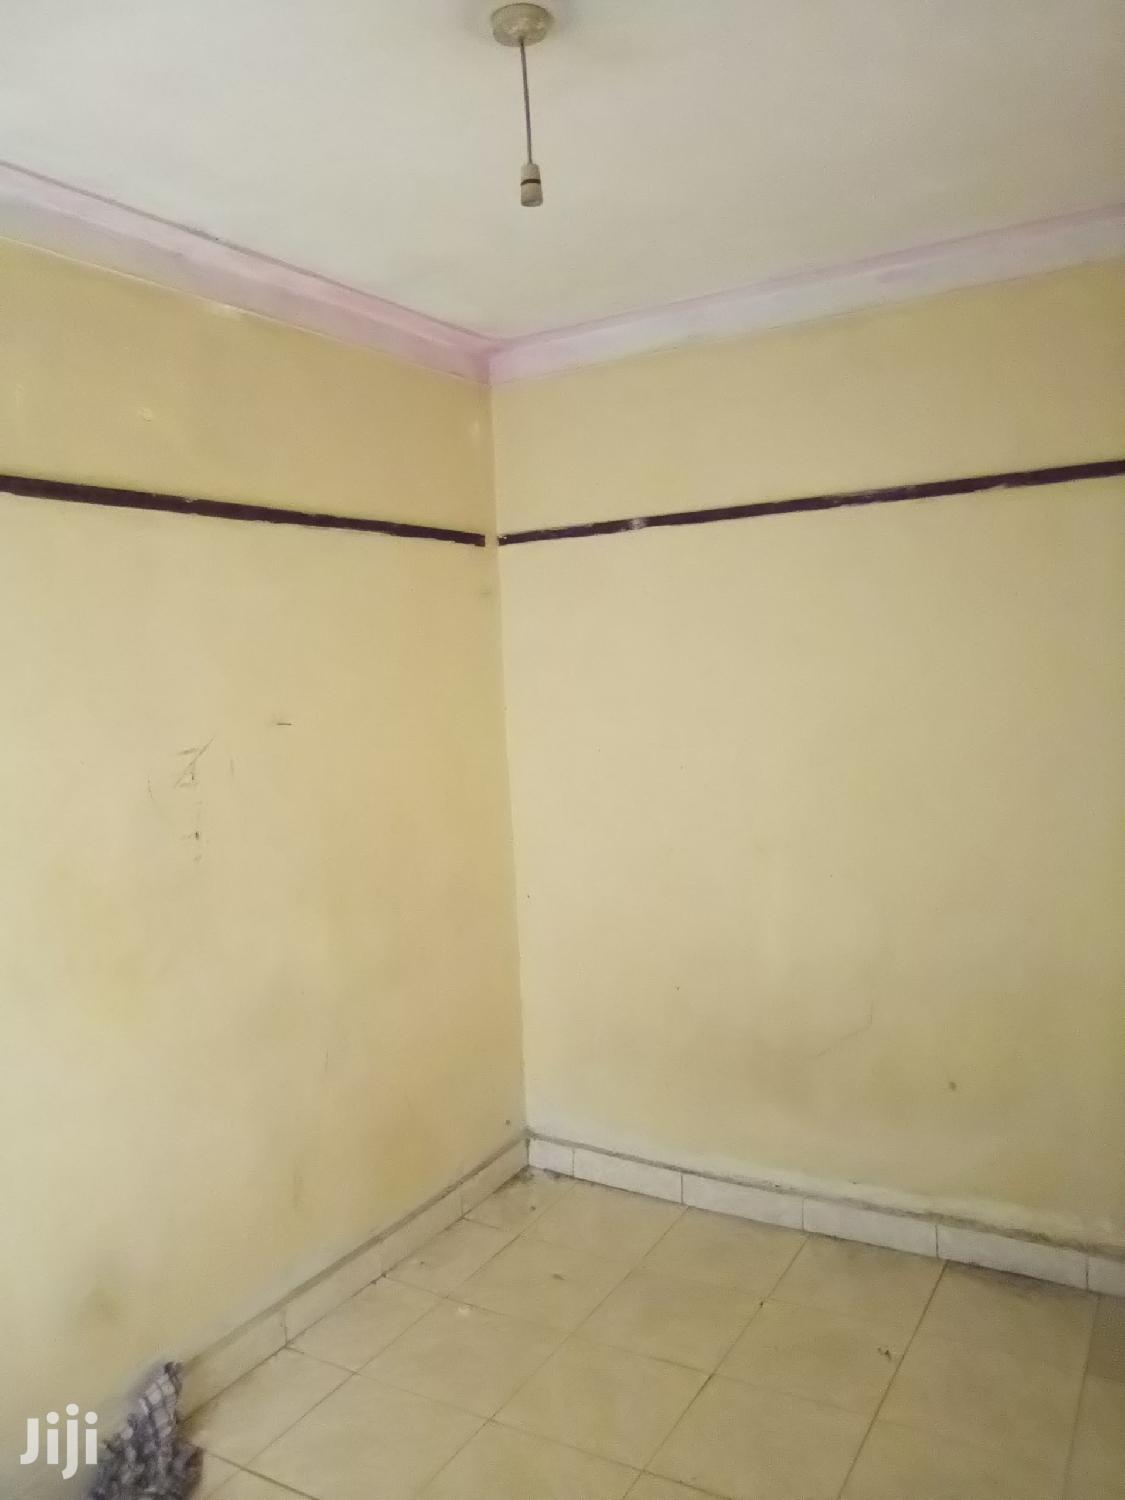 Single Room House In Mutungo For Rent   Houses & Apartments For Rent for sale in Kampala, Uganda